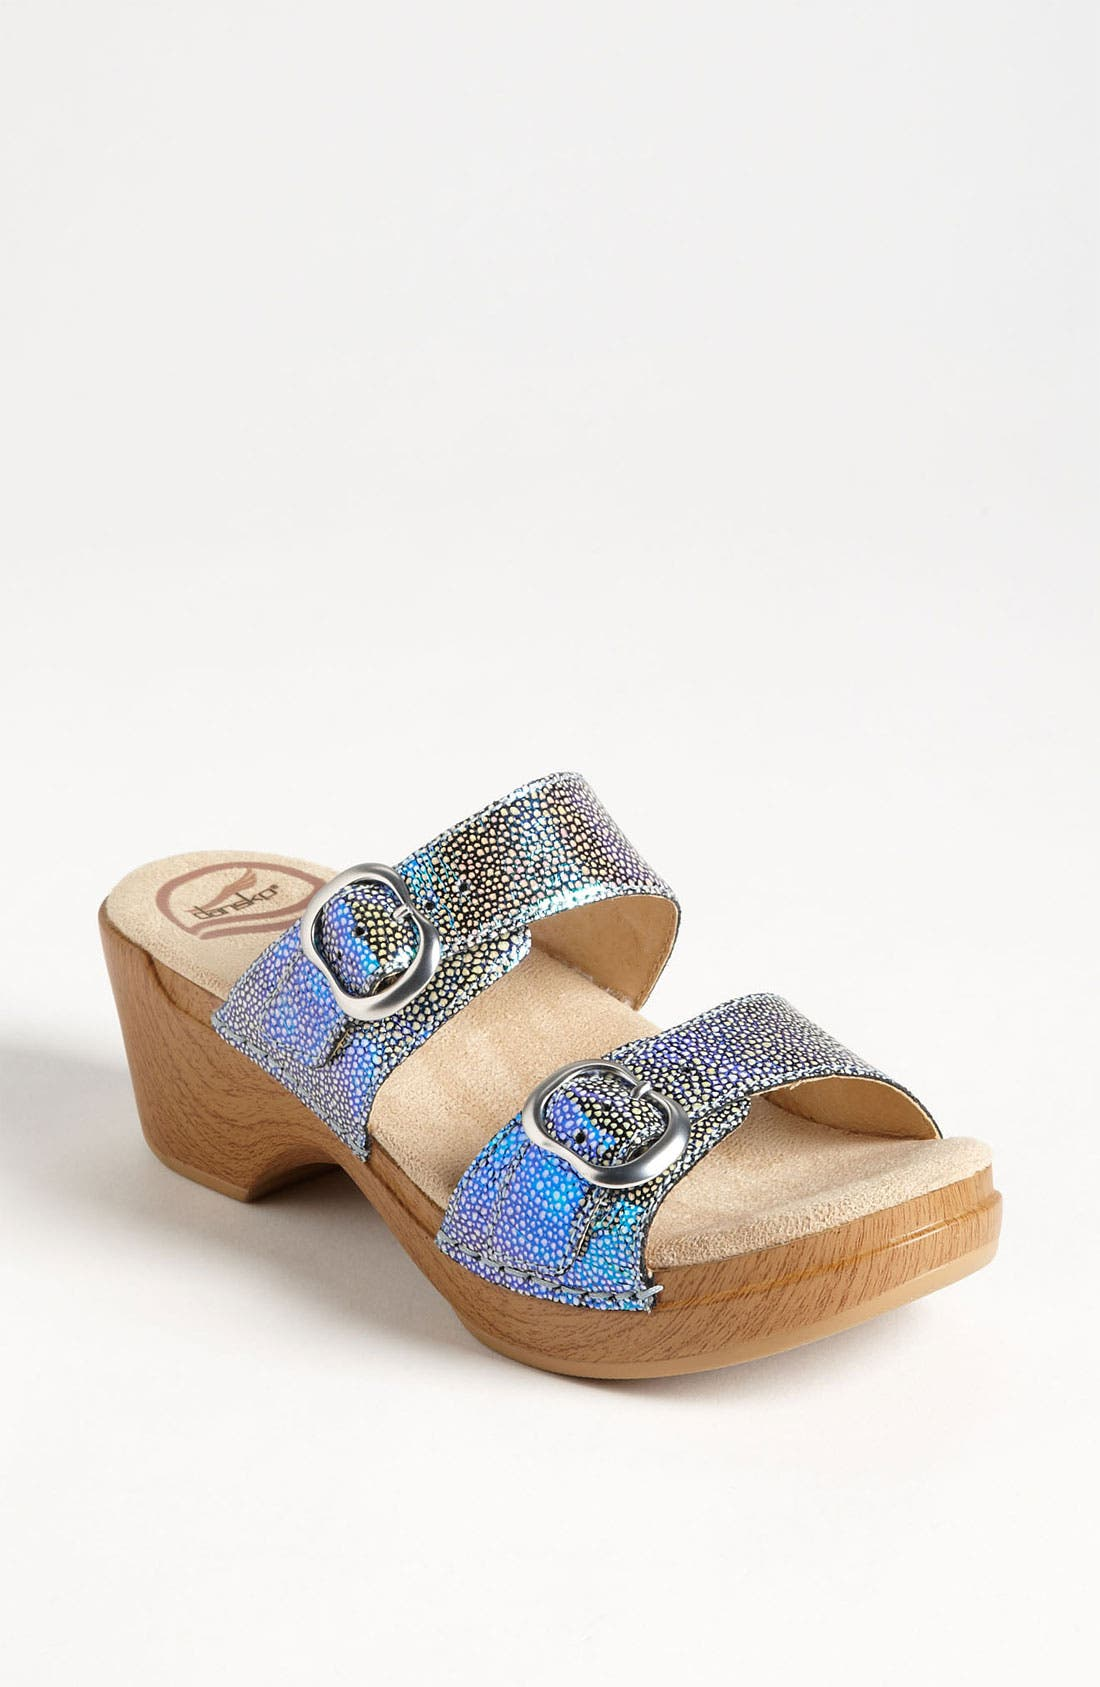 Alternate Image 1 Selected - Dansko 'Sophie' Sandal